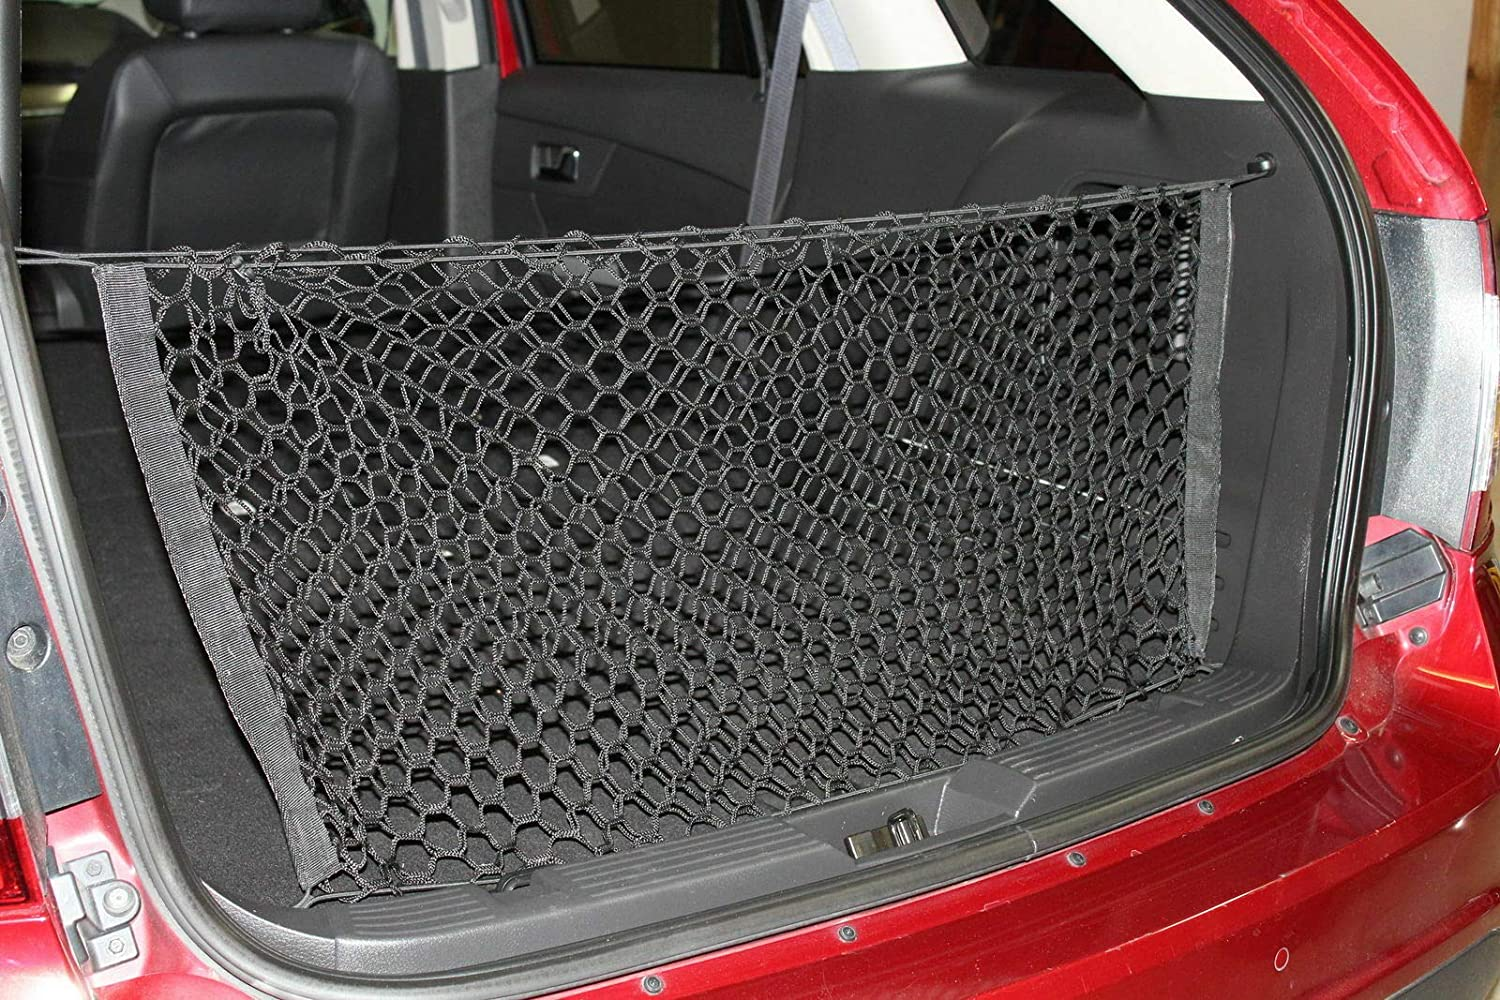 Rear Trunk Area Black Vertical Envelope Style Storage Organizer Web Mesh Luggage Fixed Bungee Compartment Cargo Net Red De Carga Del Maletero Trasero for Ford Edge 2009-2015 Lincoln MKX 2009-2016 New